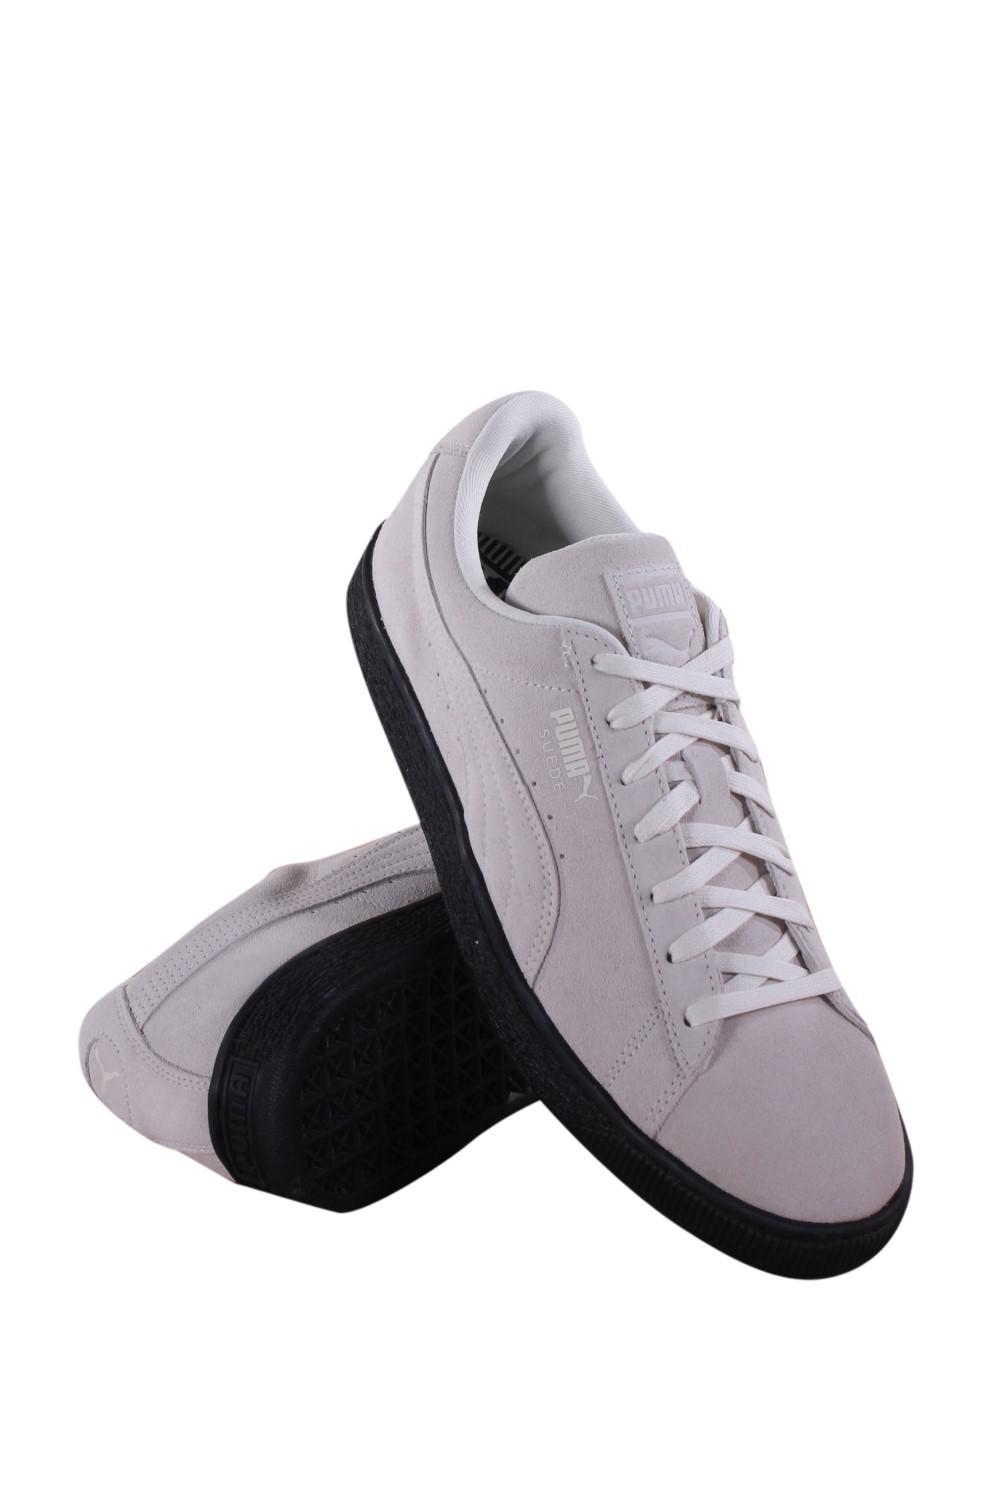 d3b8d46981b776 Lyst - PUMA Suede Black Sole Whisper White Lace Up Sneakers in Black ...